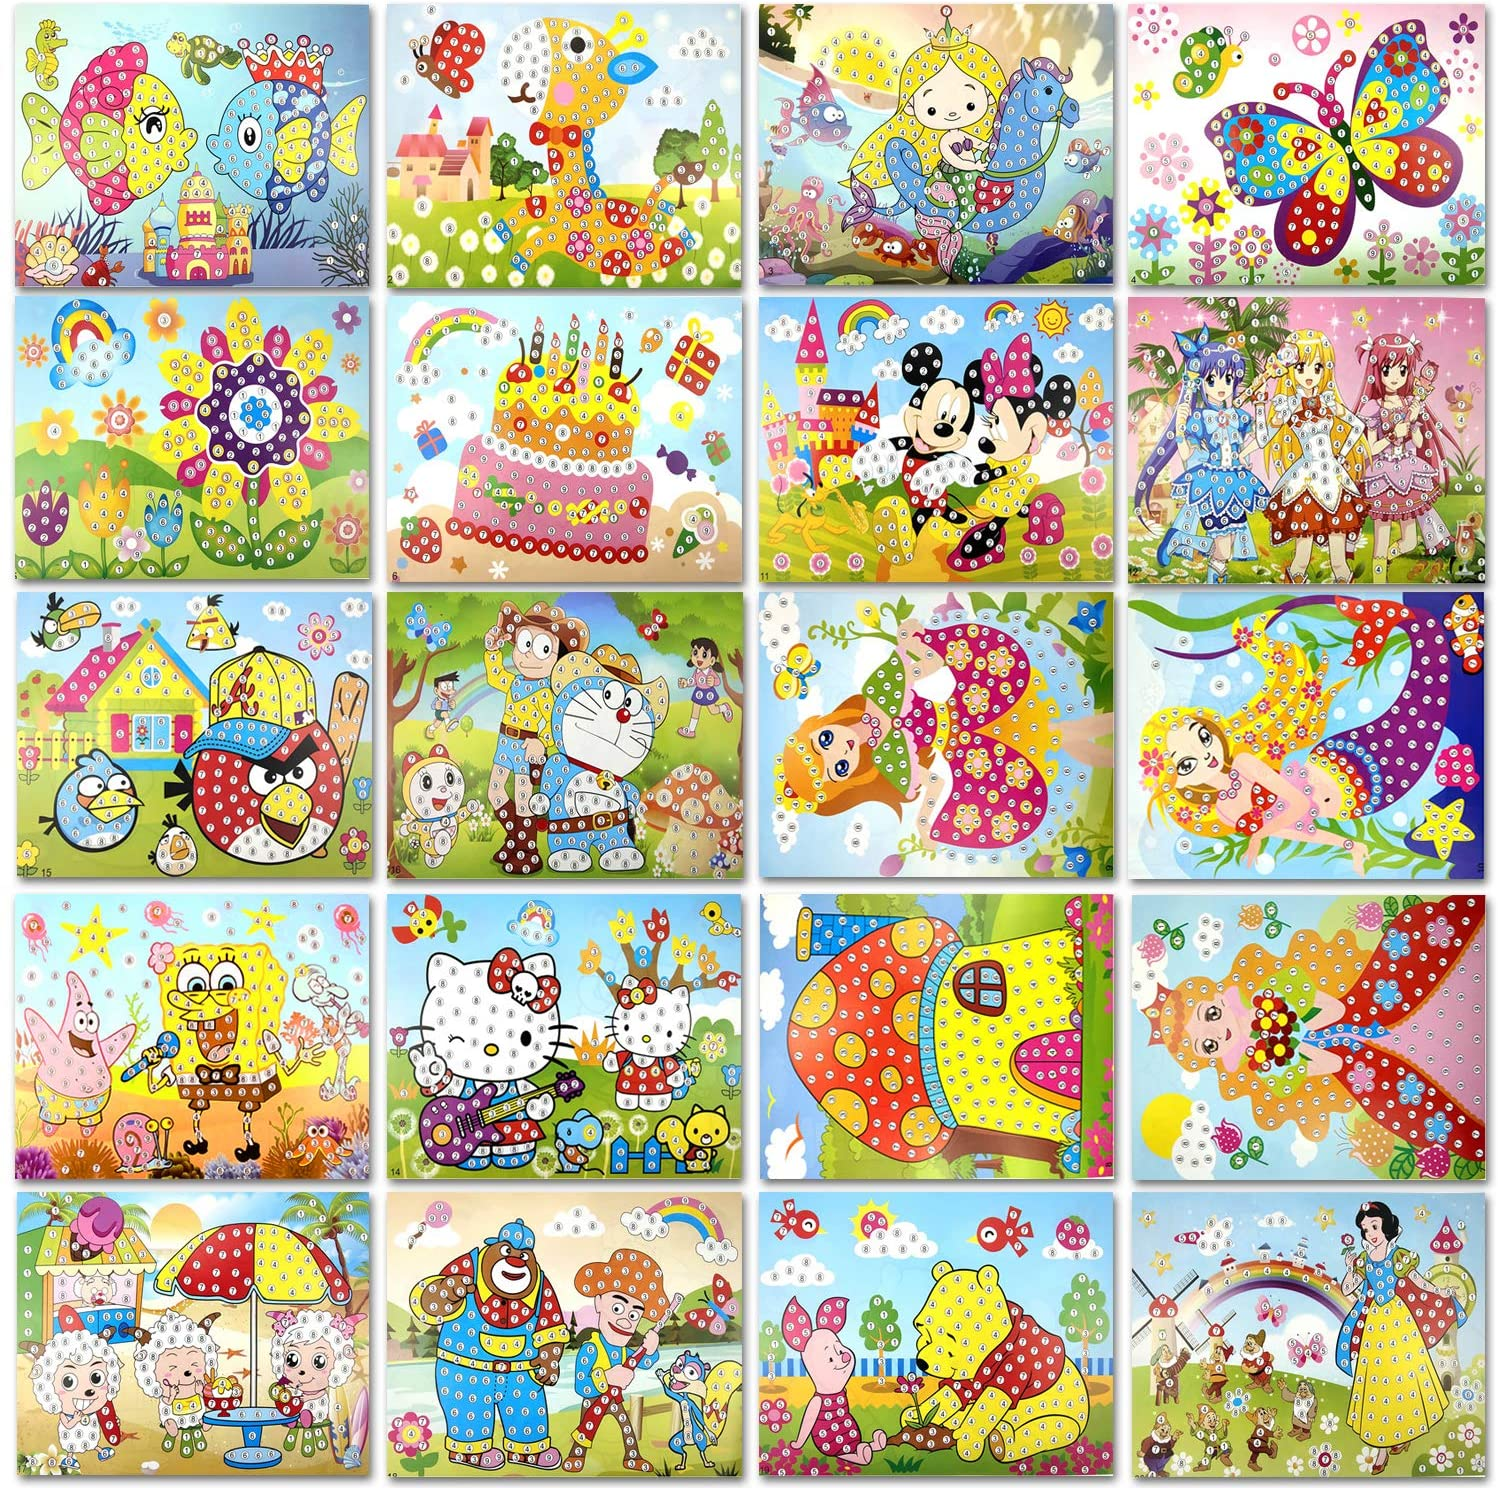 Xixiturtle Kids Diamond Painting Mosaic Sticker Art Craft for DIY Handmade Toys for Kids & Toddlers Fun Activities Postcards Gifts-20 Pcs Different Patterns